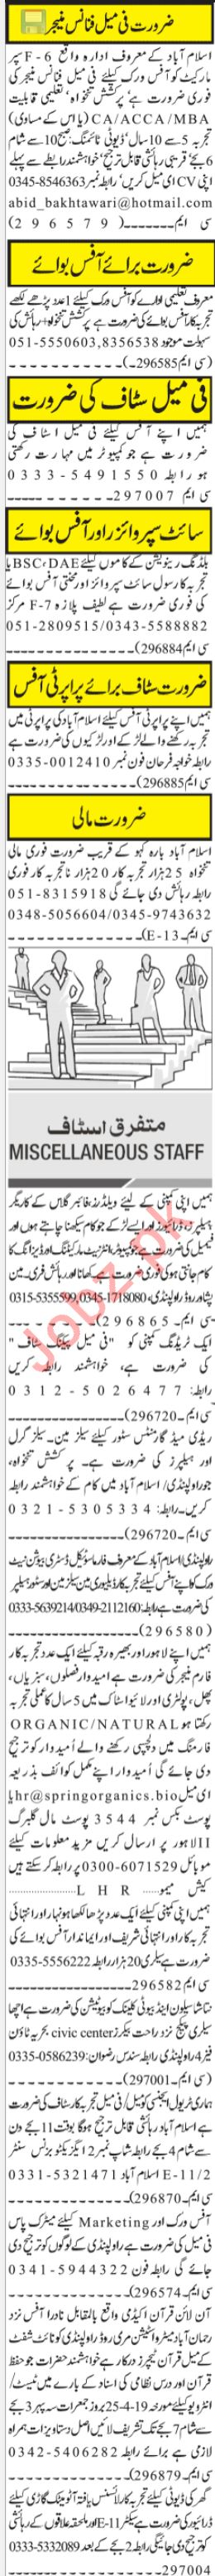 Office Staff Jobs Career Opportunity